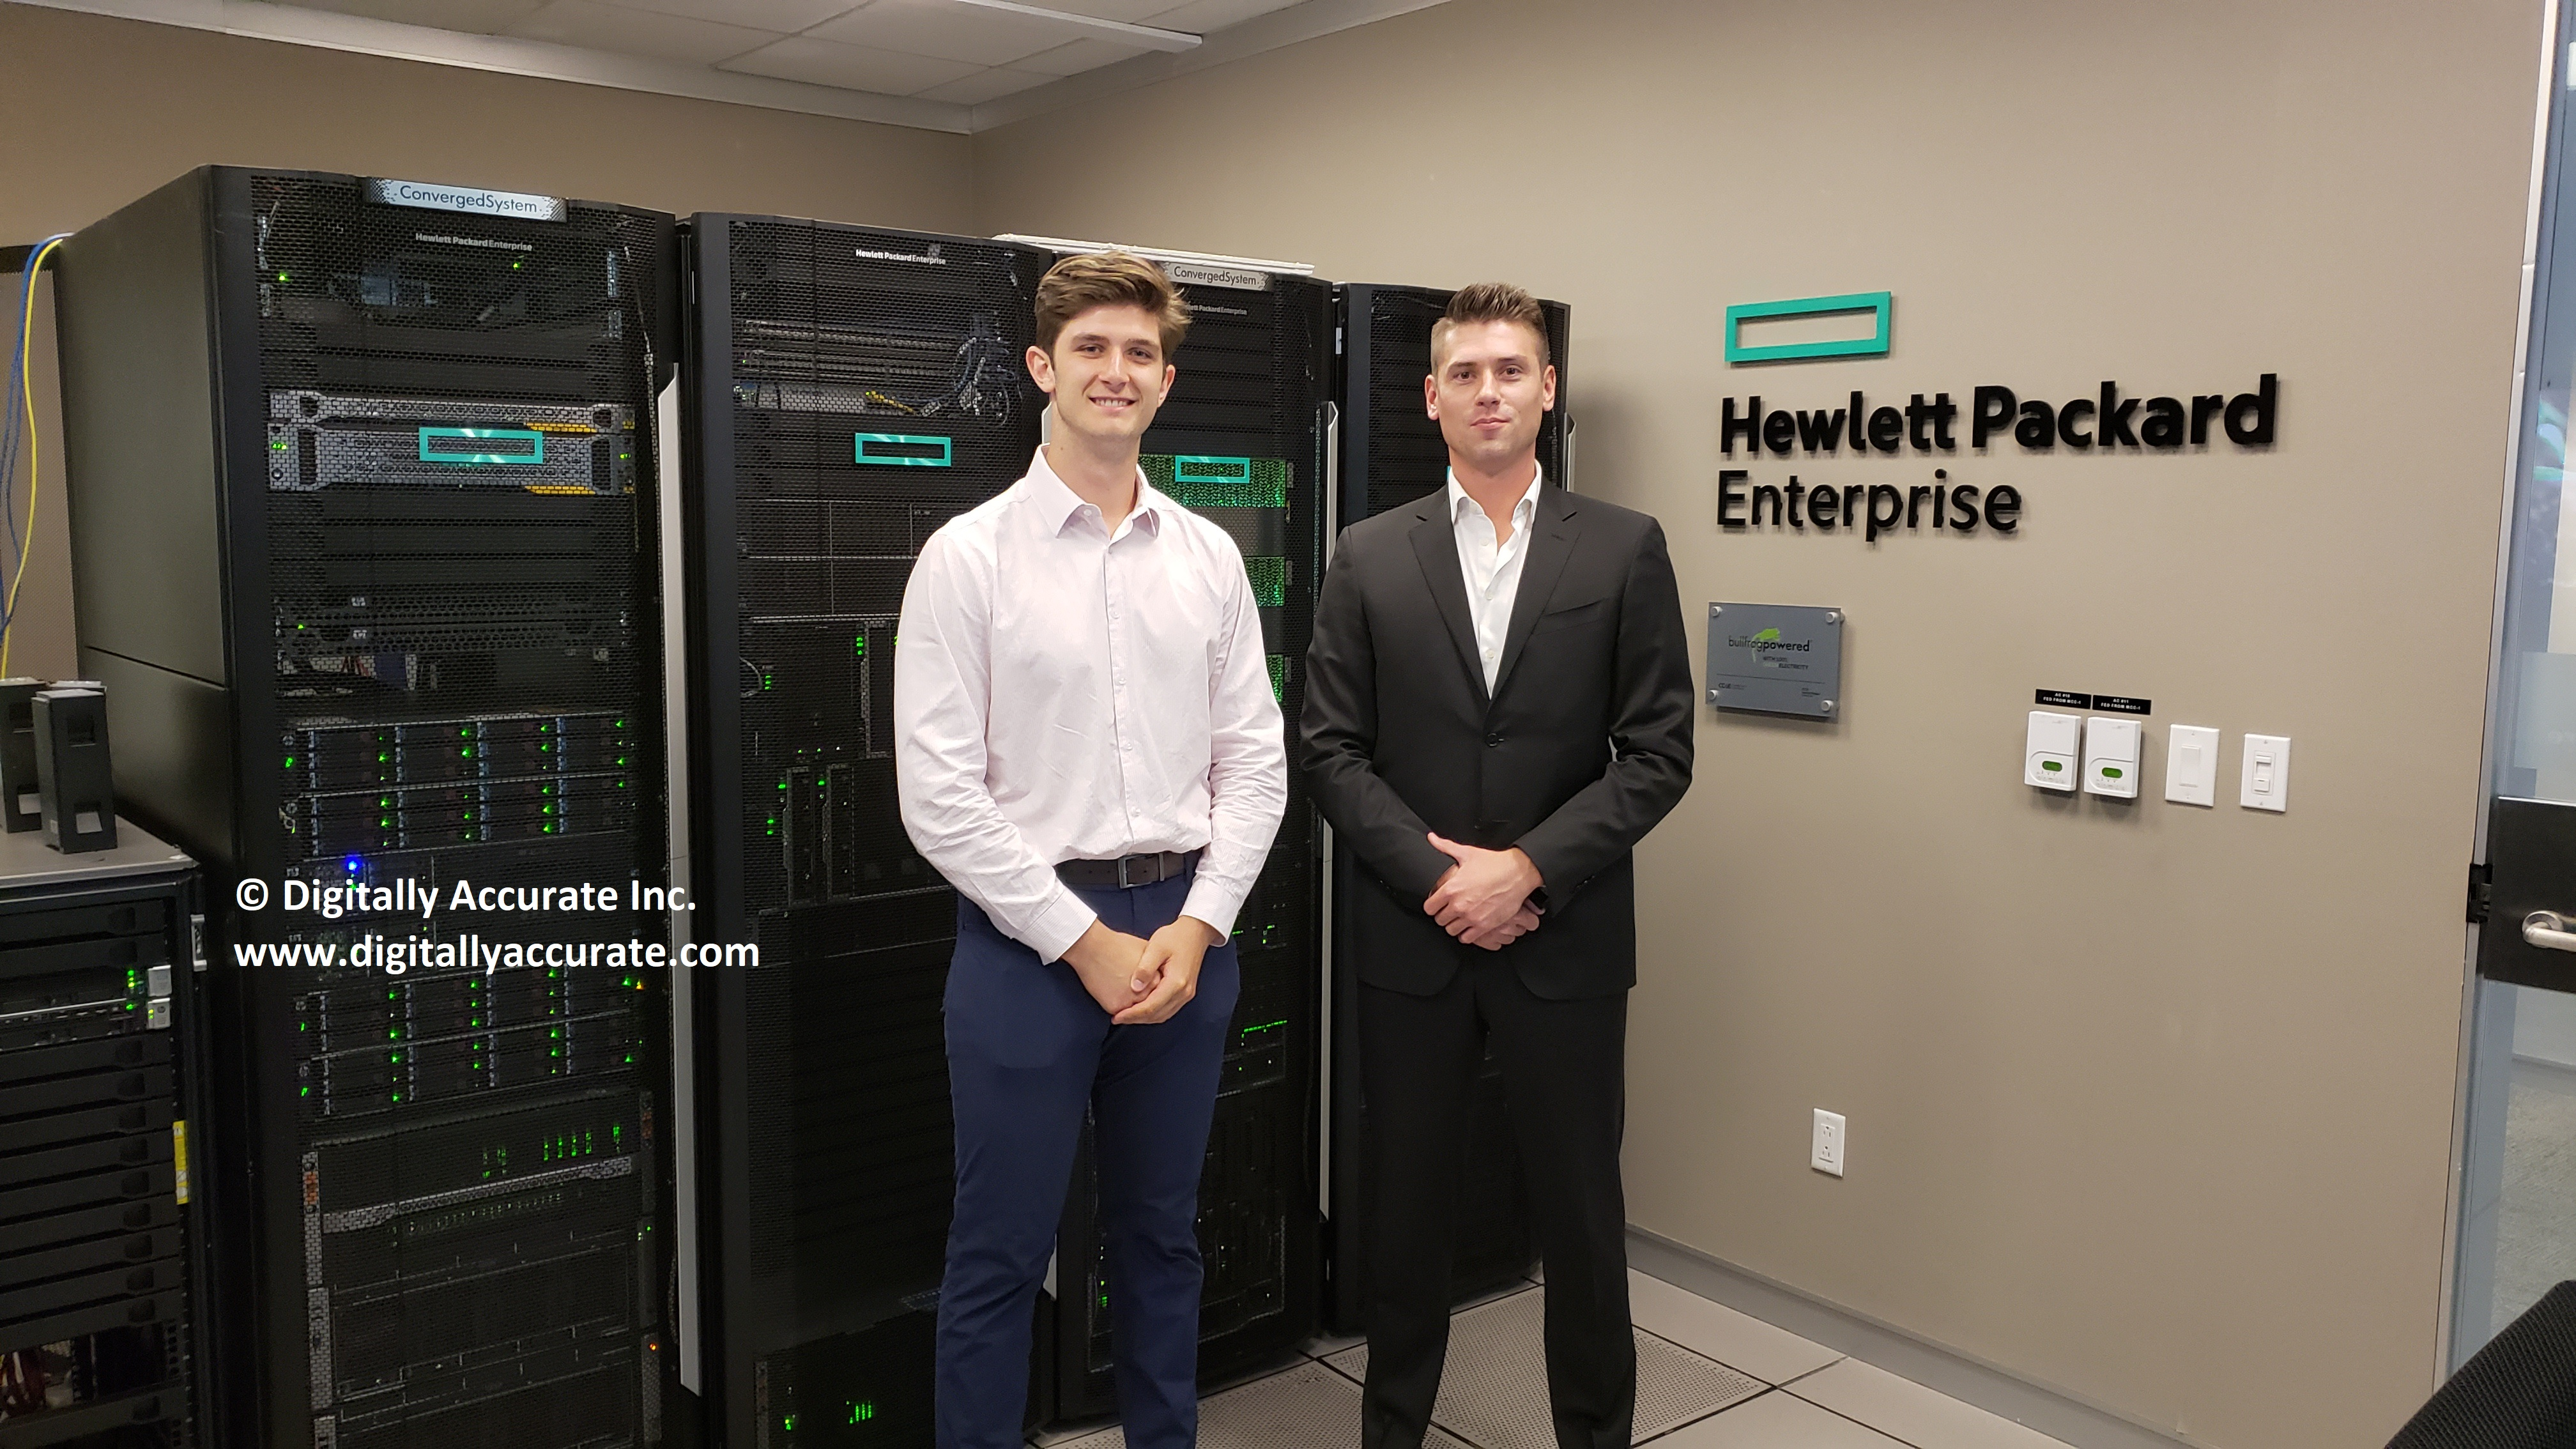 Digitally Accurate Inc  visits HPe Headquarters in Toronto